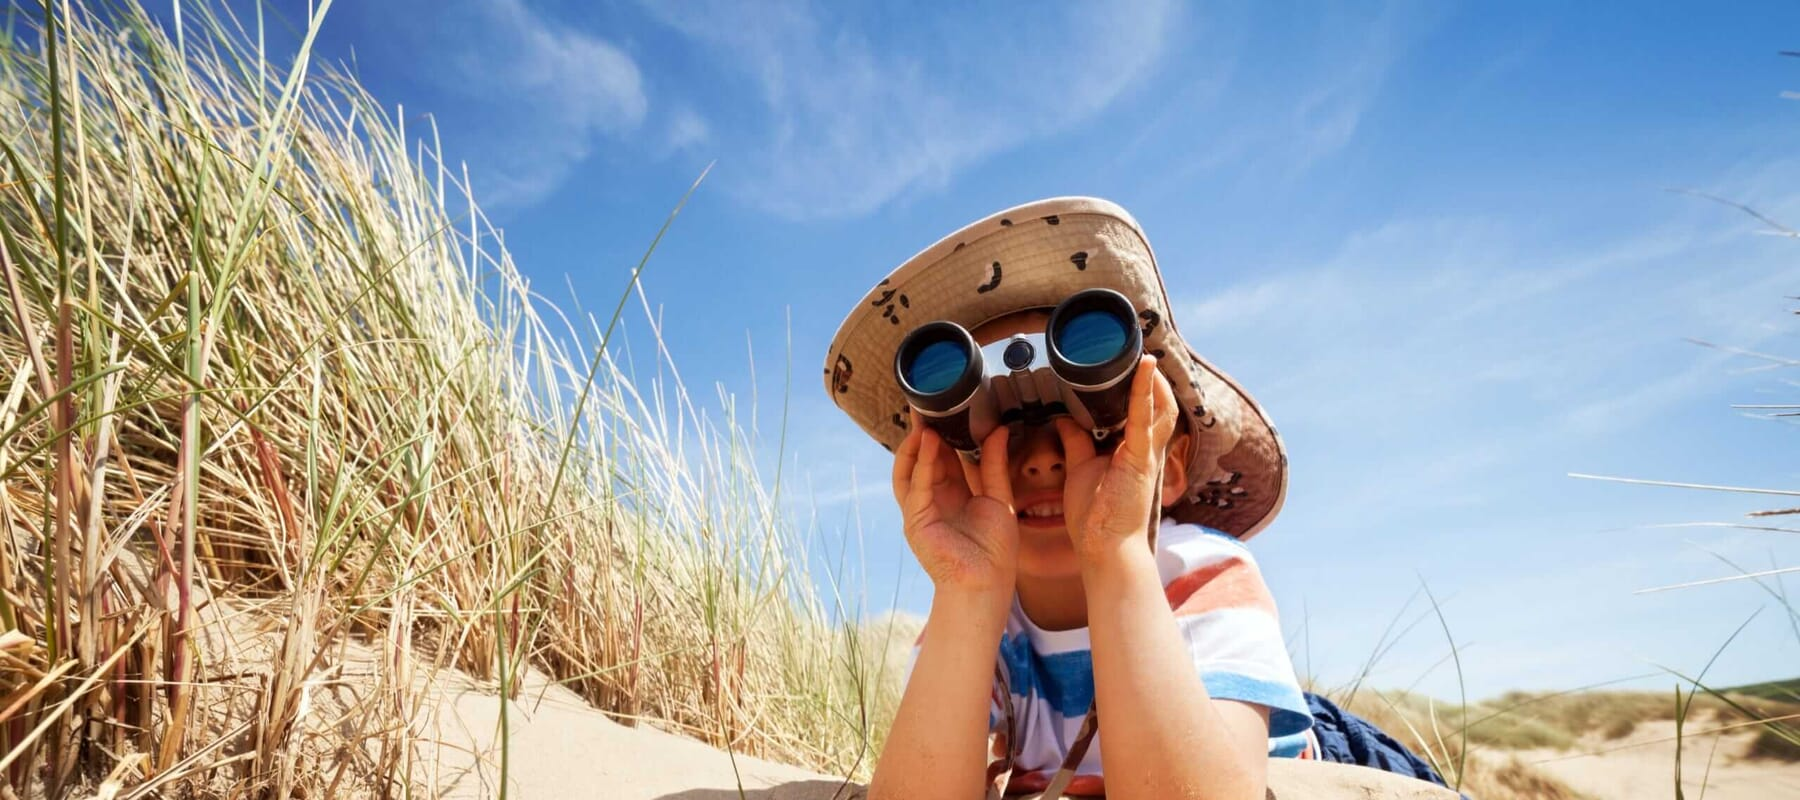 Boy at the beach searching with binoculars